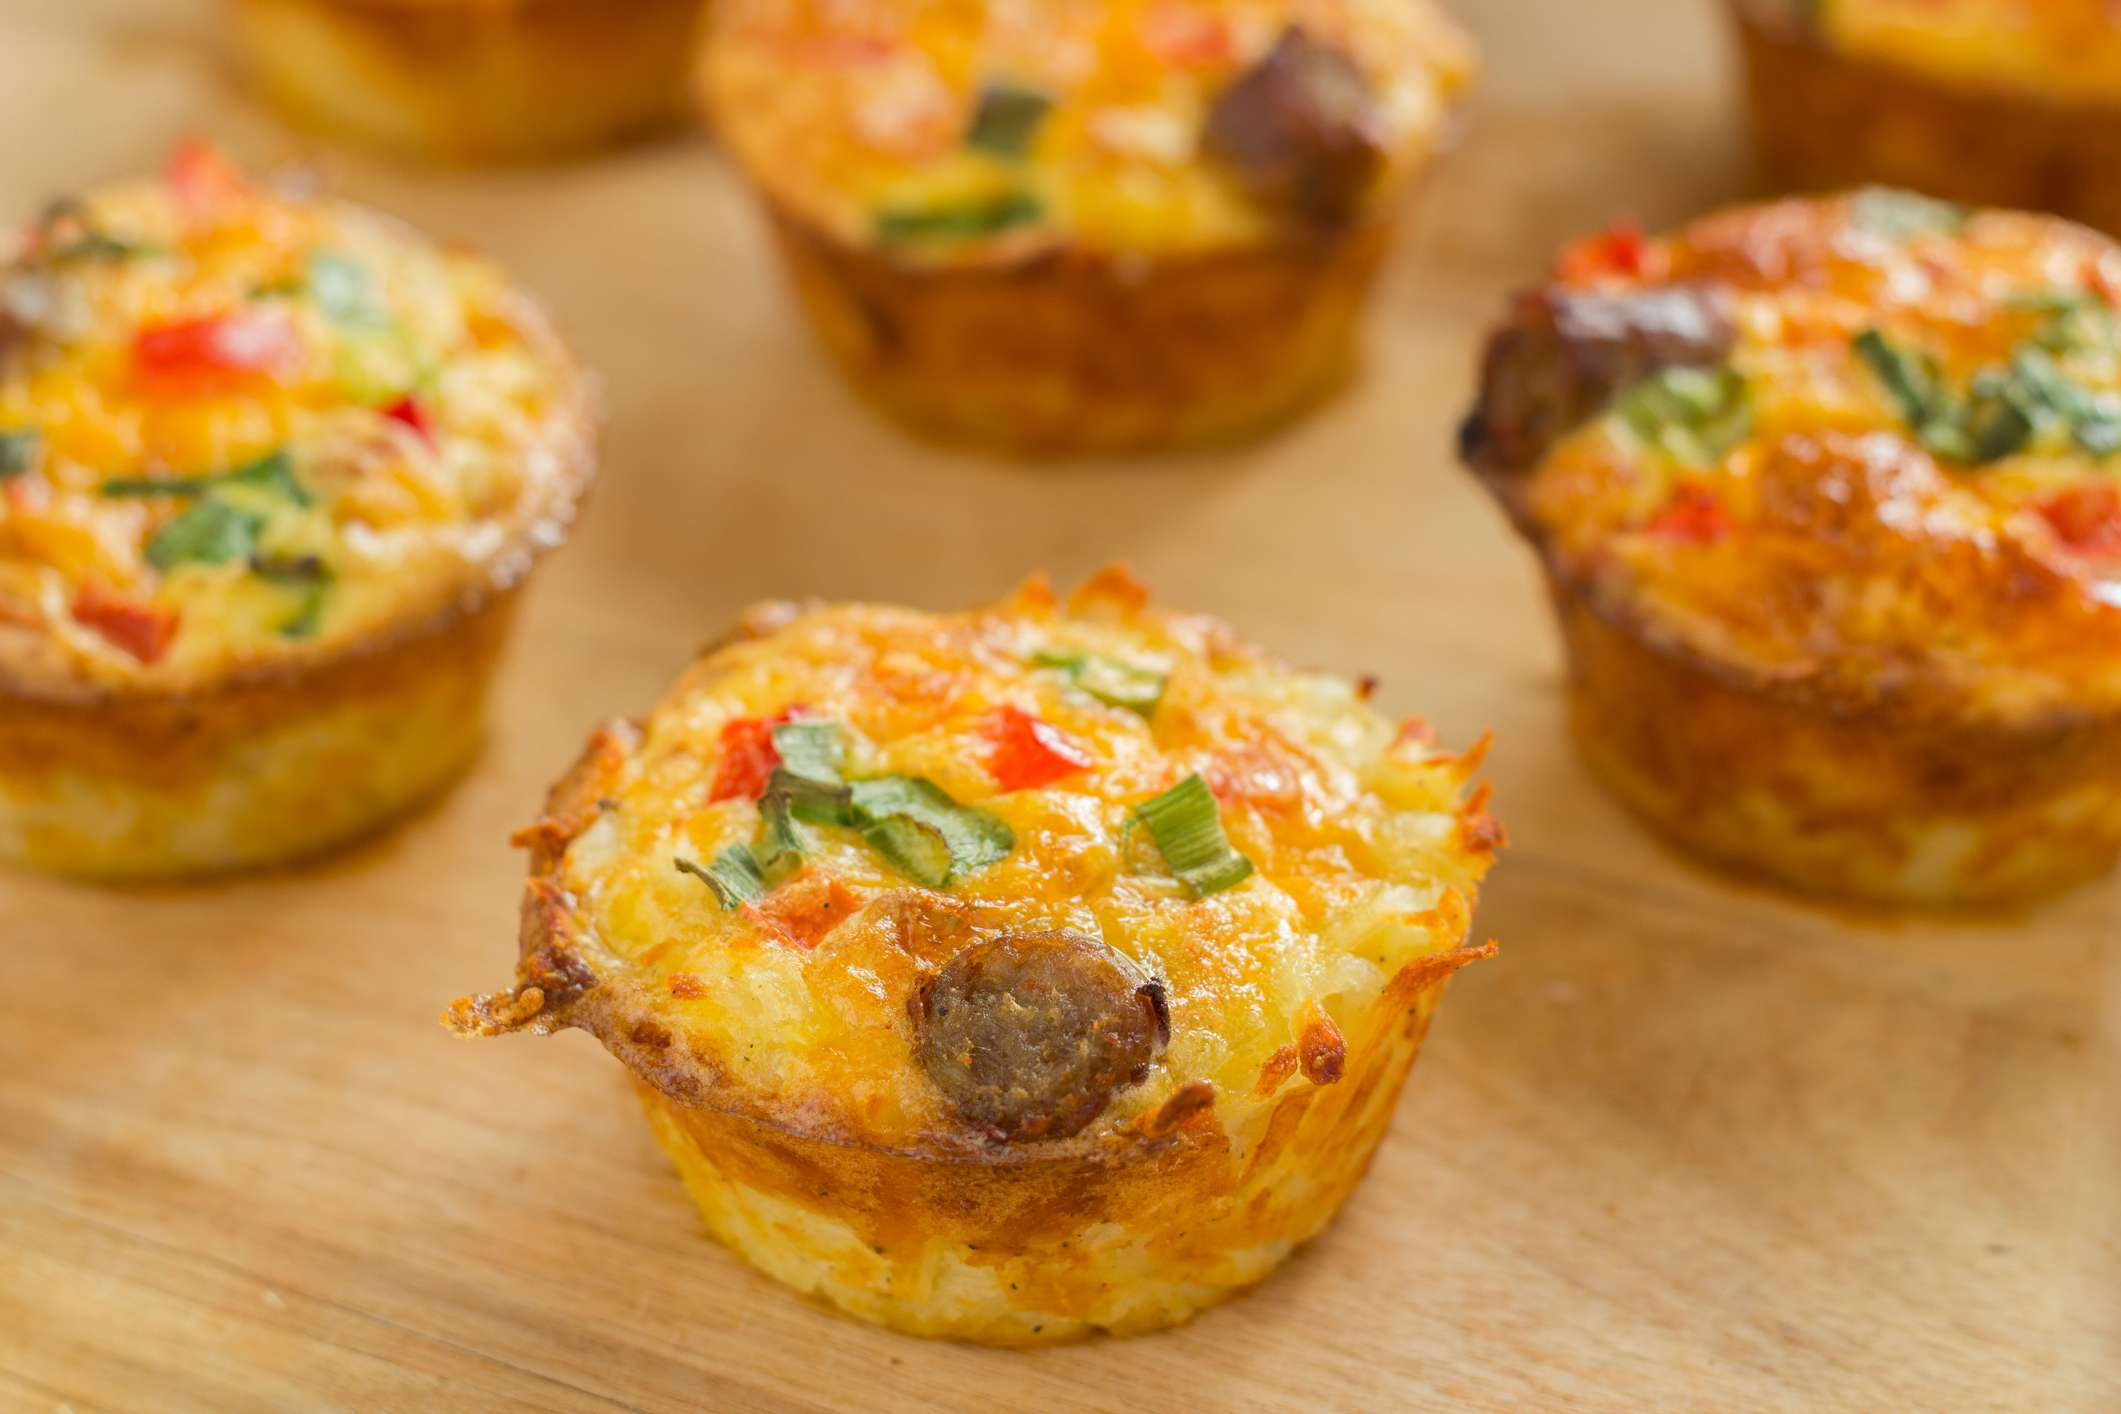 Egg muffins on a wooden cutting board